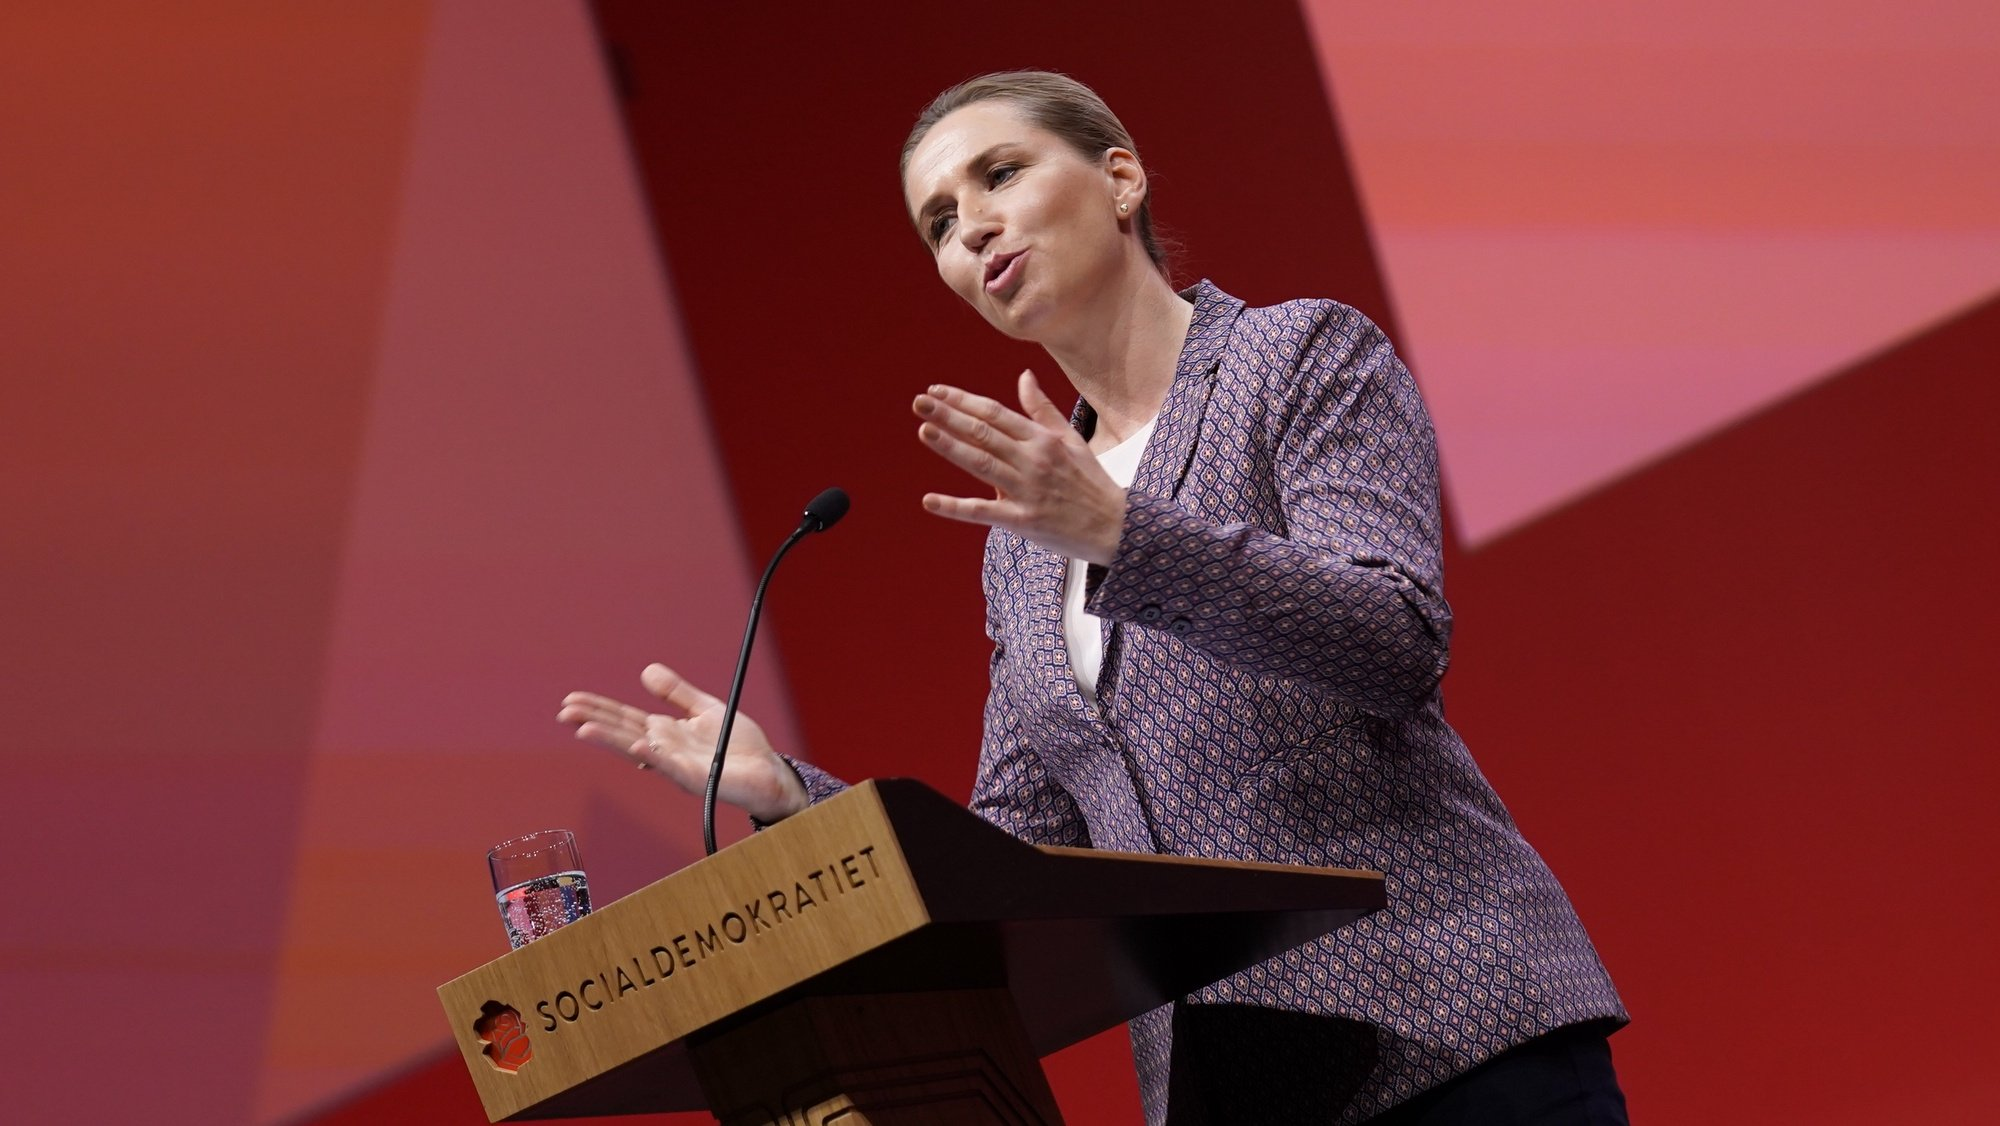 epa09474482 Denmark's Prime Minister and head of the Social Democrats Mette Frederiksen delivers her opening speech at the Social Democrats Congress in Aalborg, Denmark, 18 September 2021.  EPA/Henning Bagger  DENMARK OUT